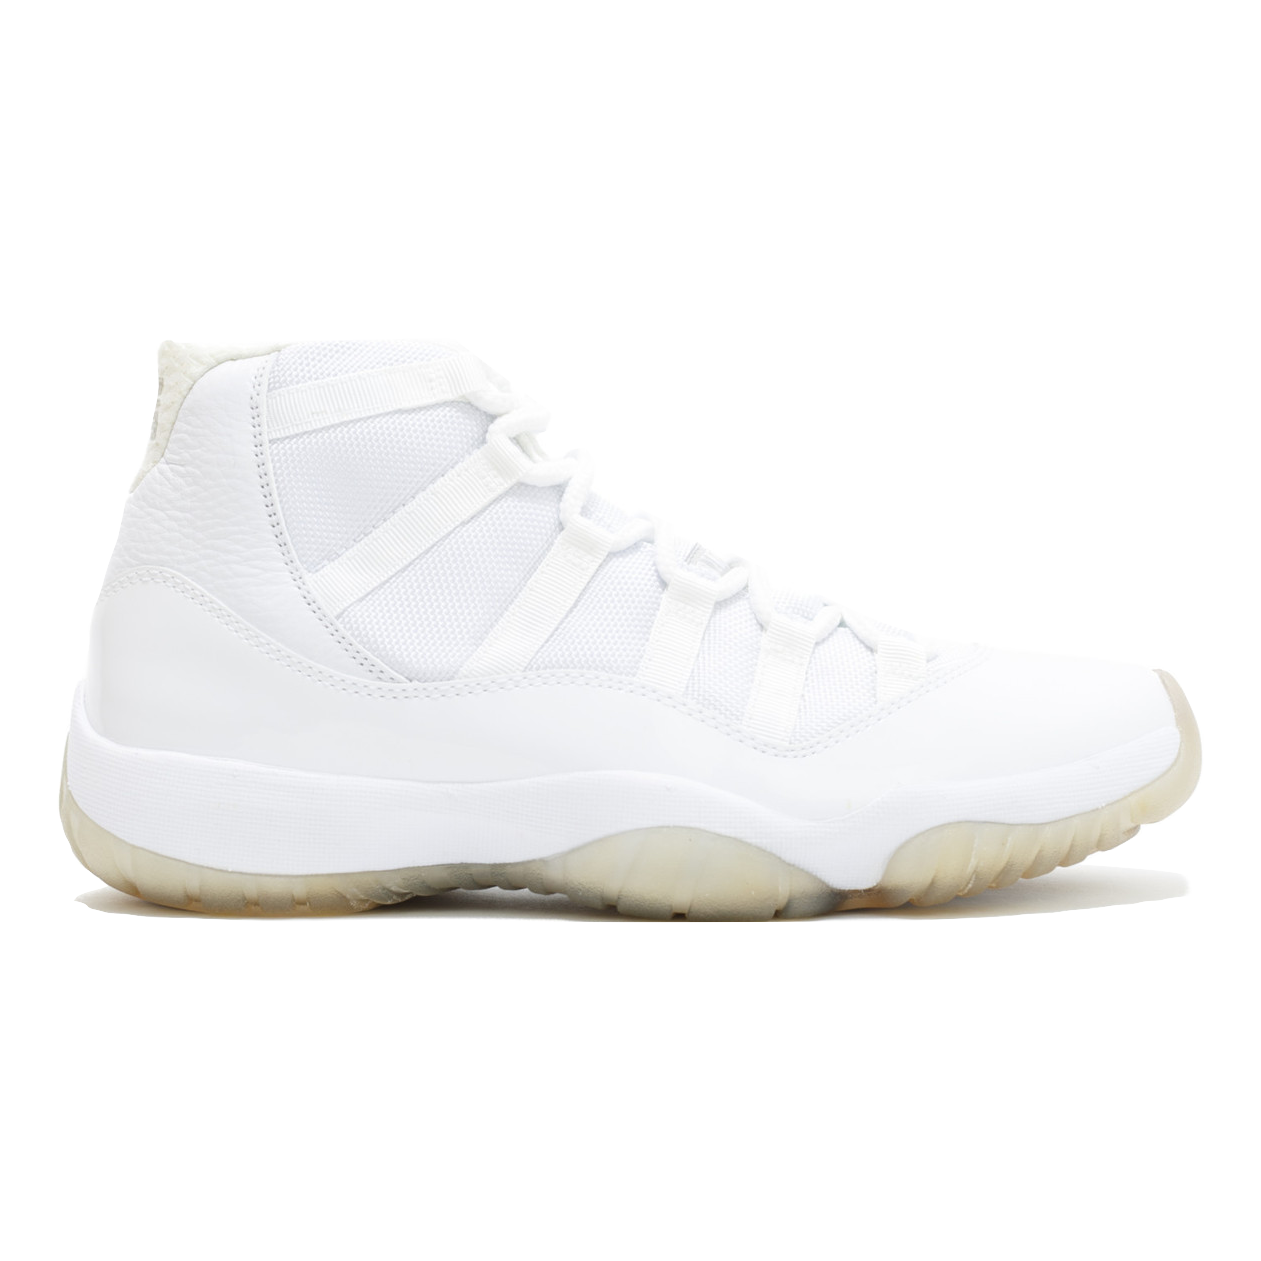 Air Jordan 11 Retro - 25th Anniversary